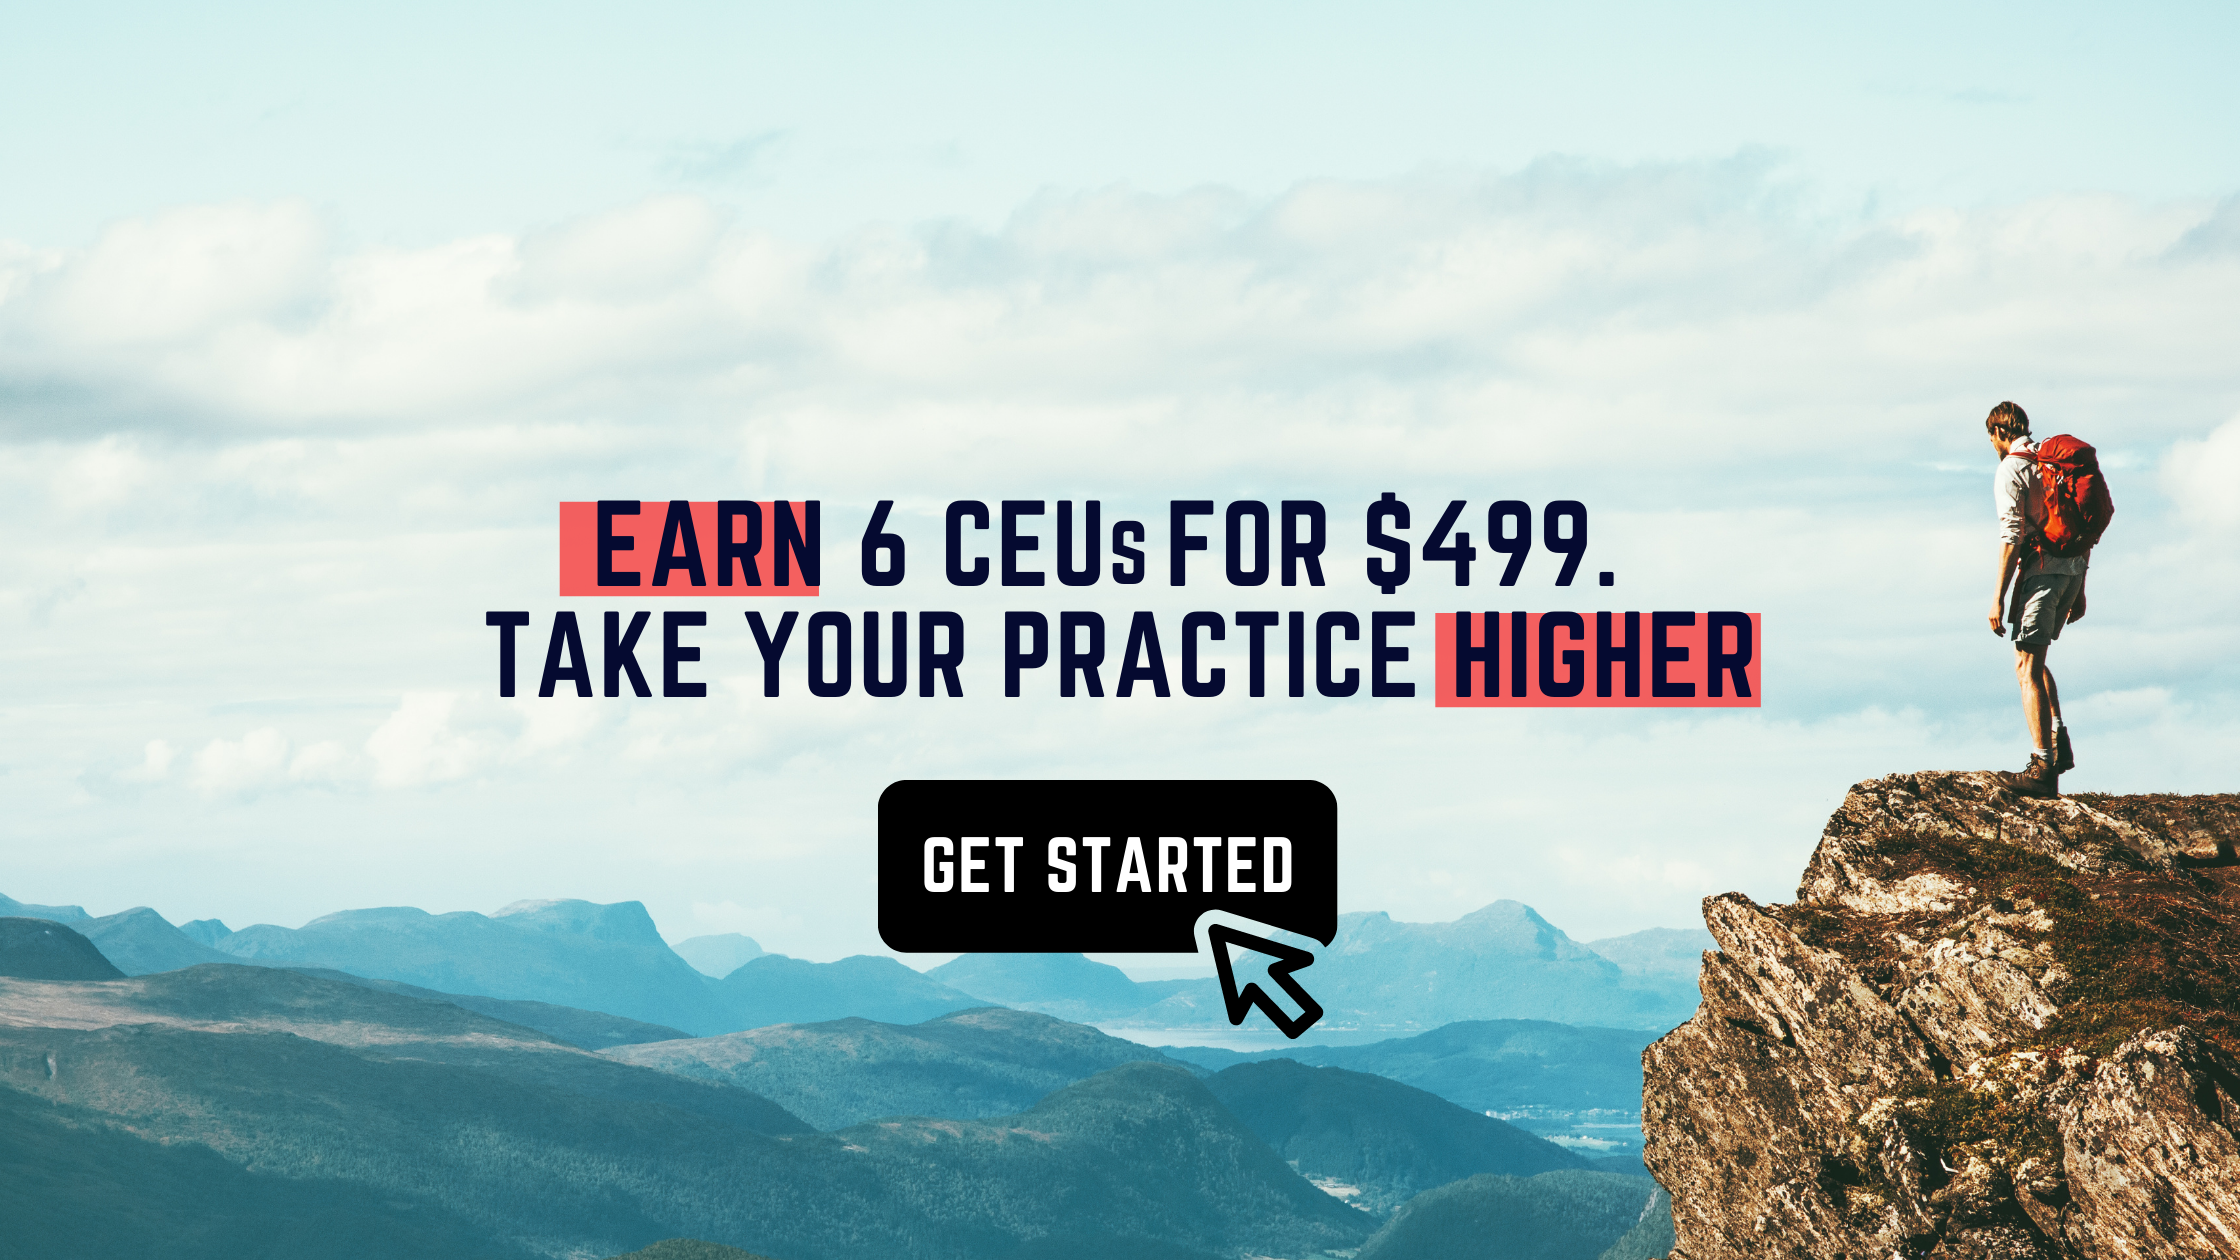 Earn 6 CEUs for Private Practice